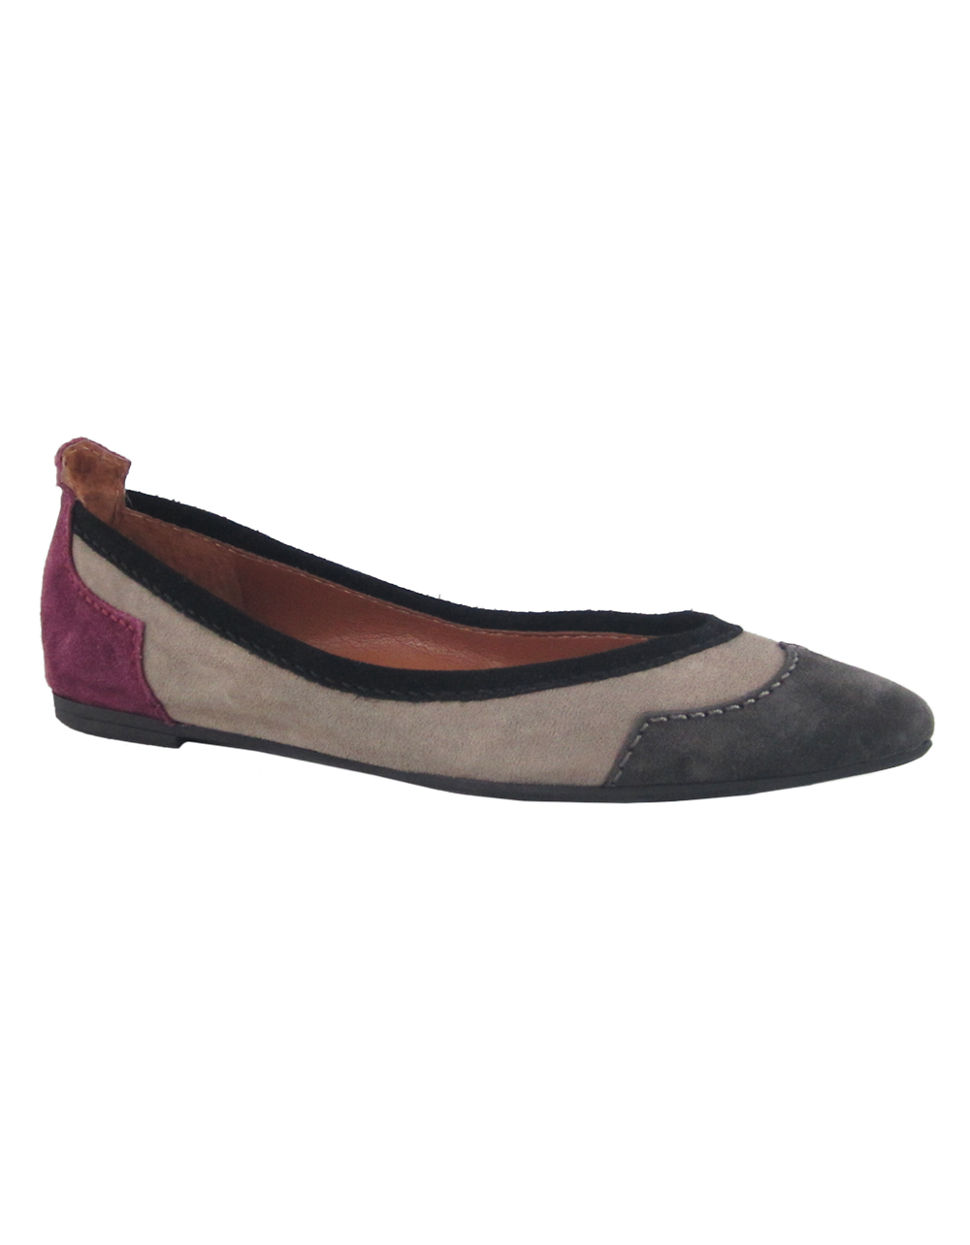 NINE WEST Soyeah Multi Coloured Western Flat taupe multi Size 9